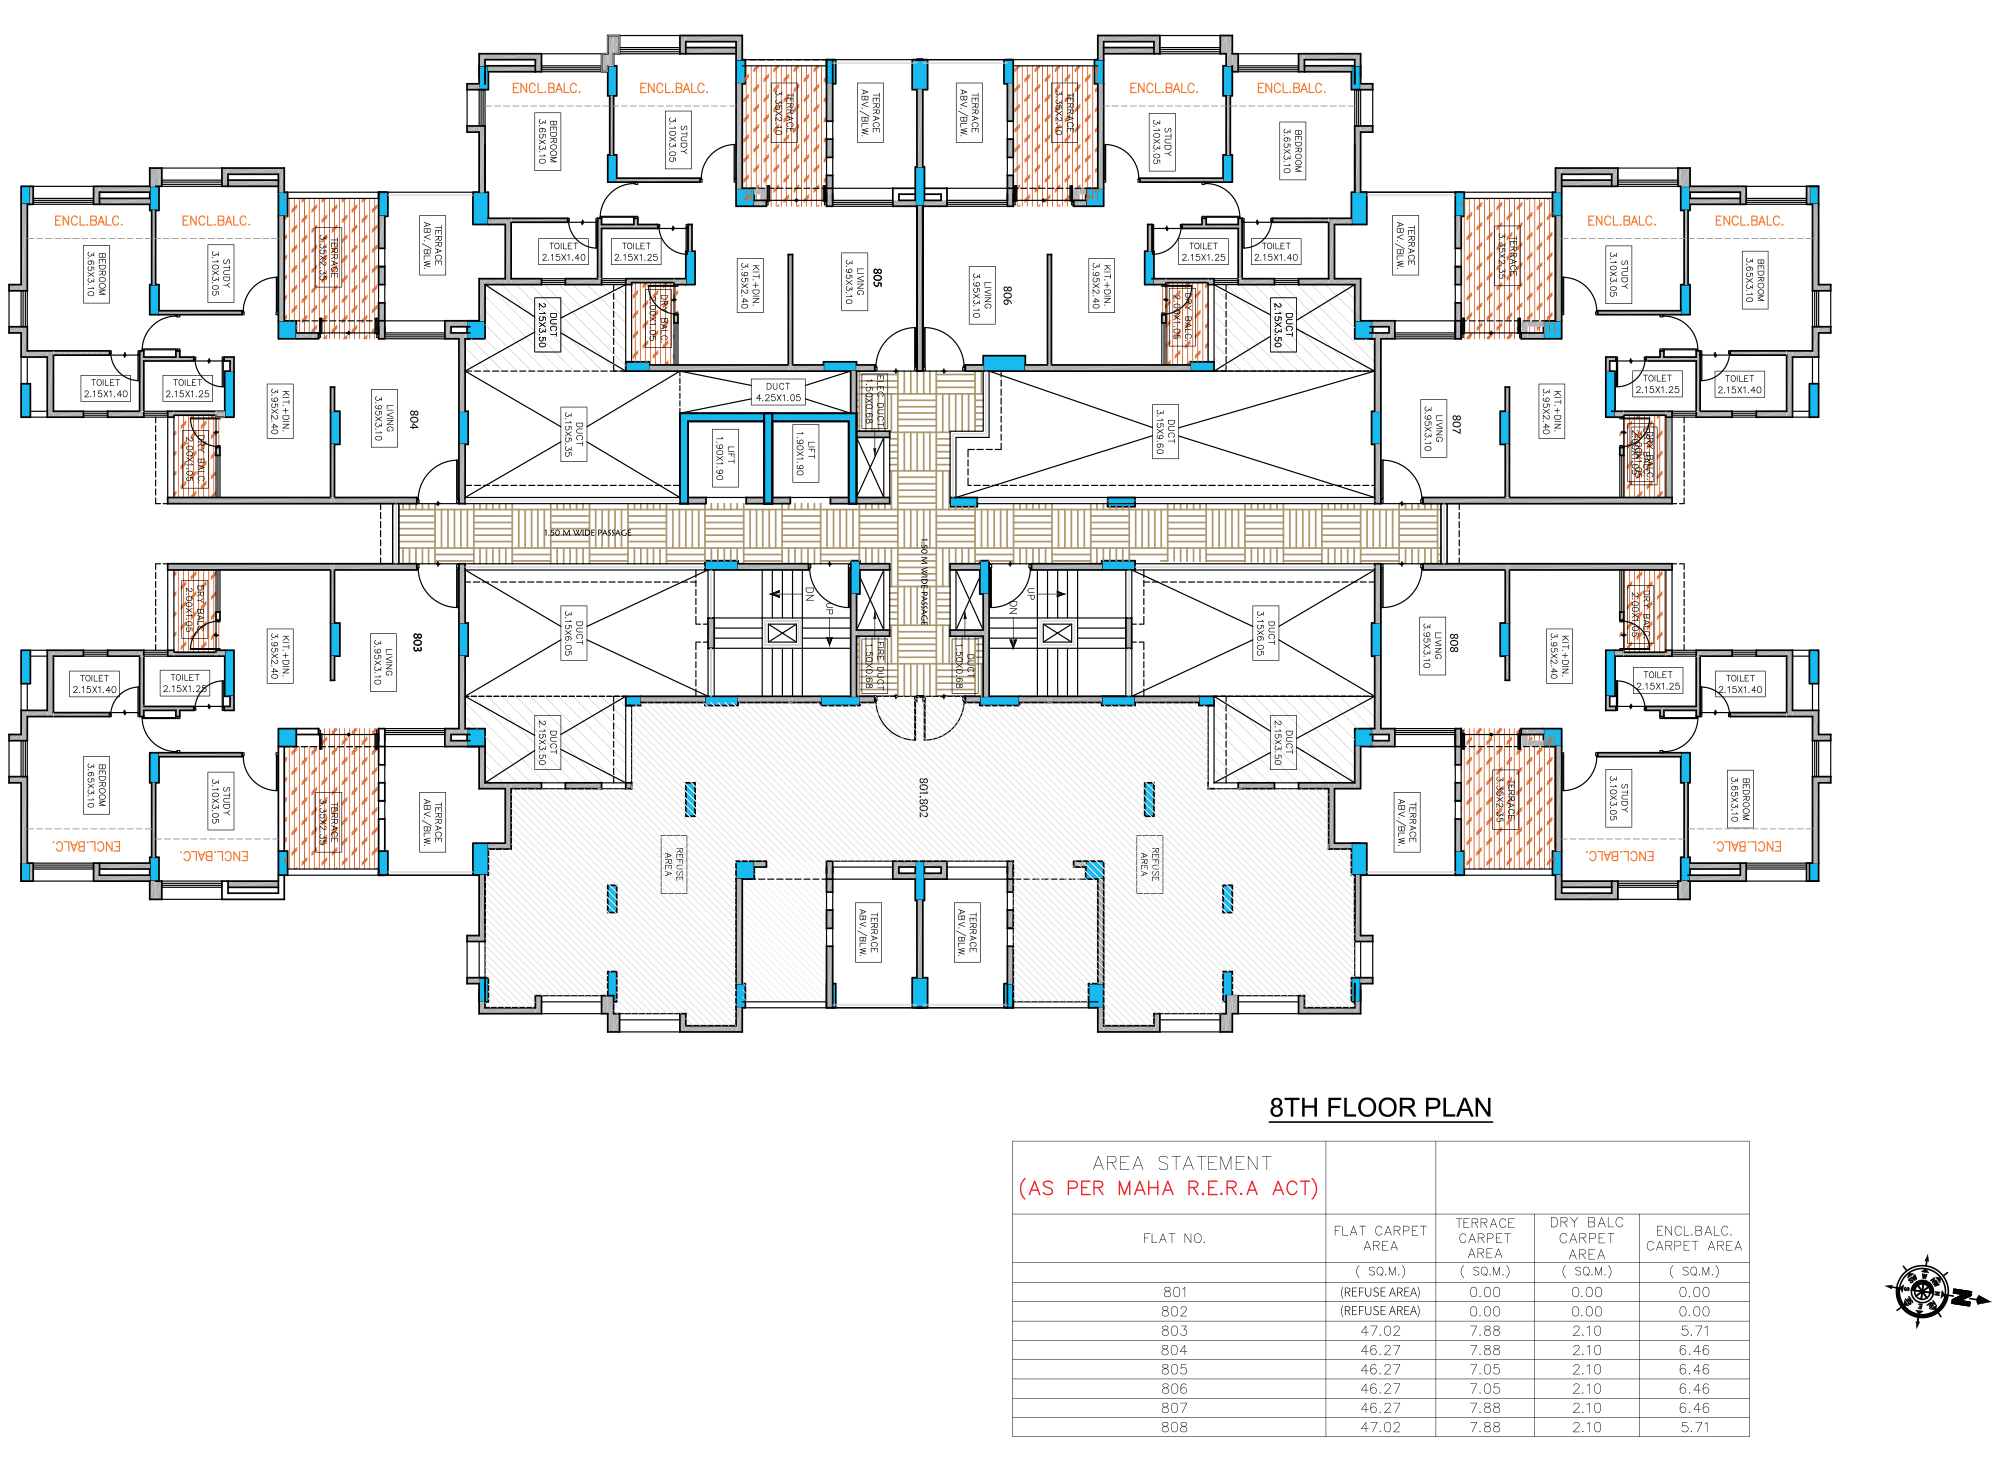 Neo City_Phase 1 E Type –8 FLOOR PLAN